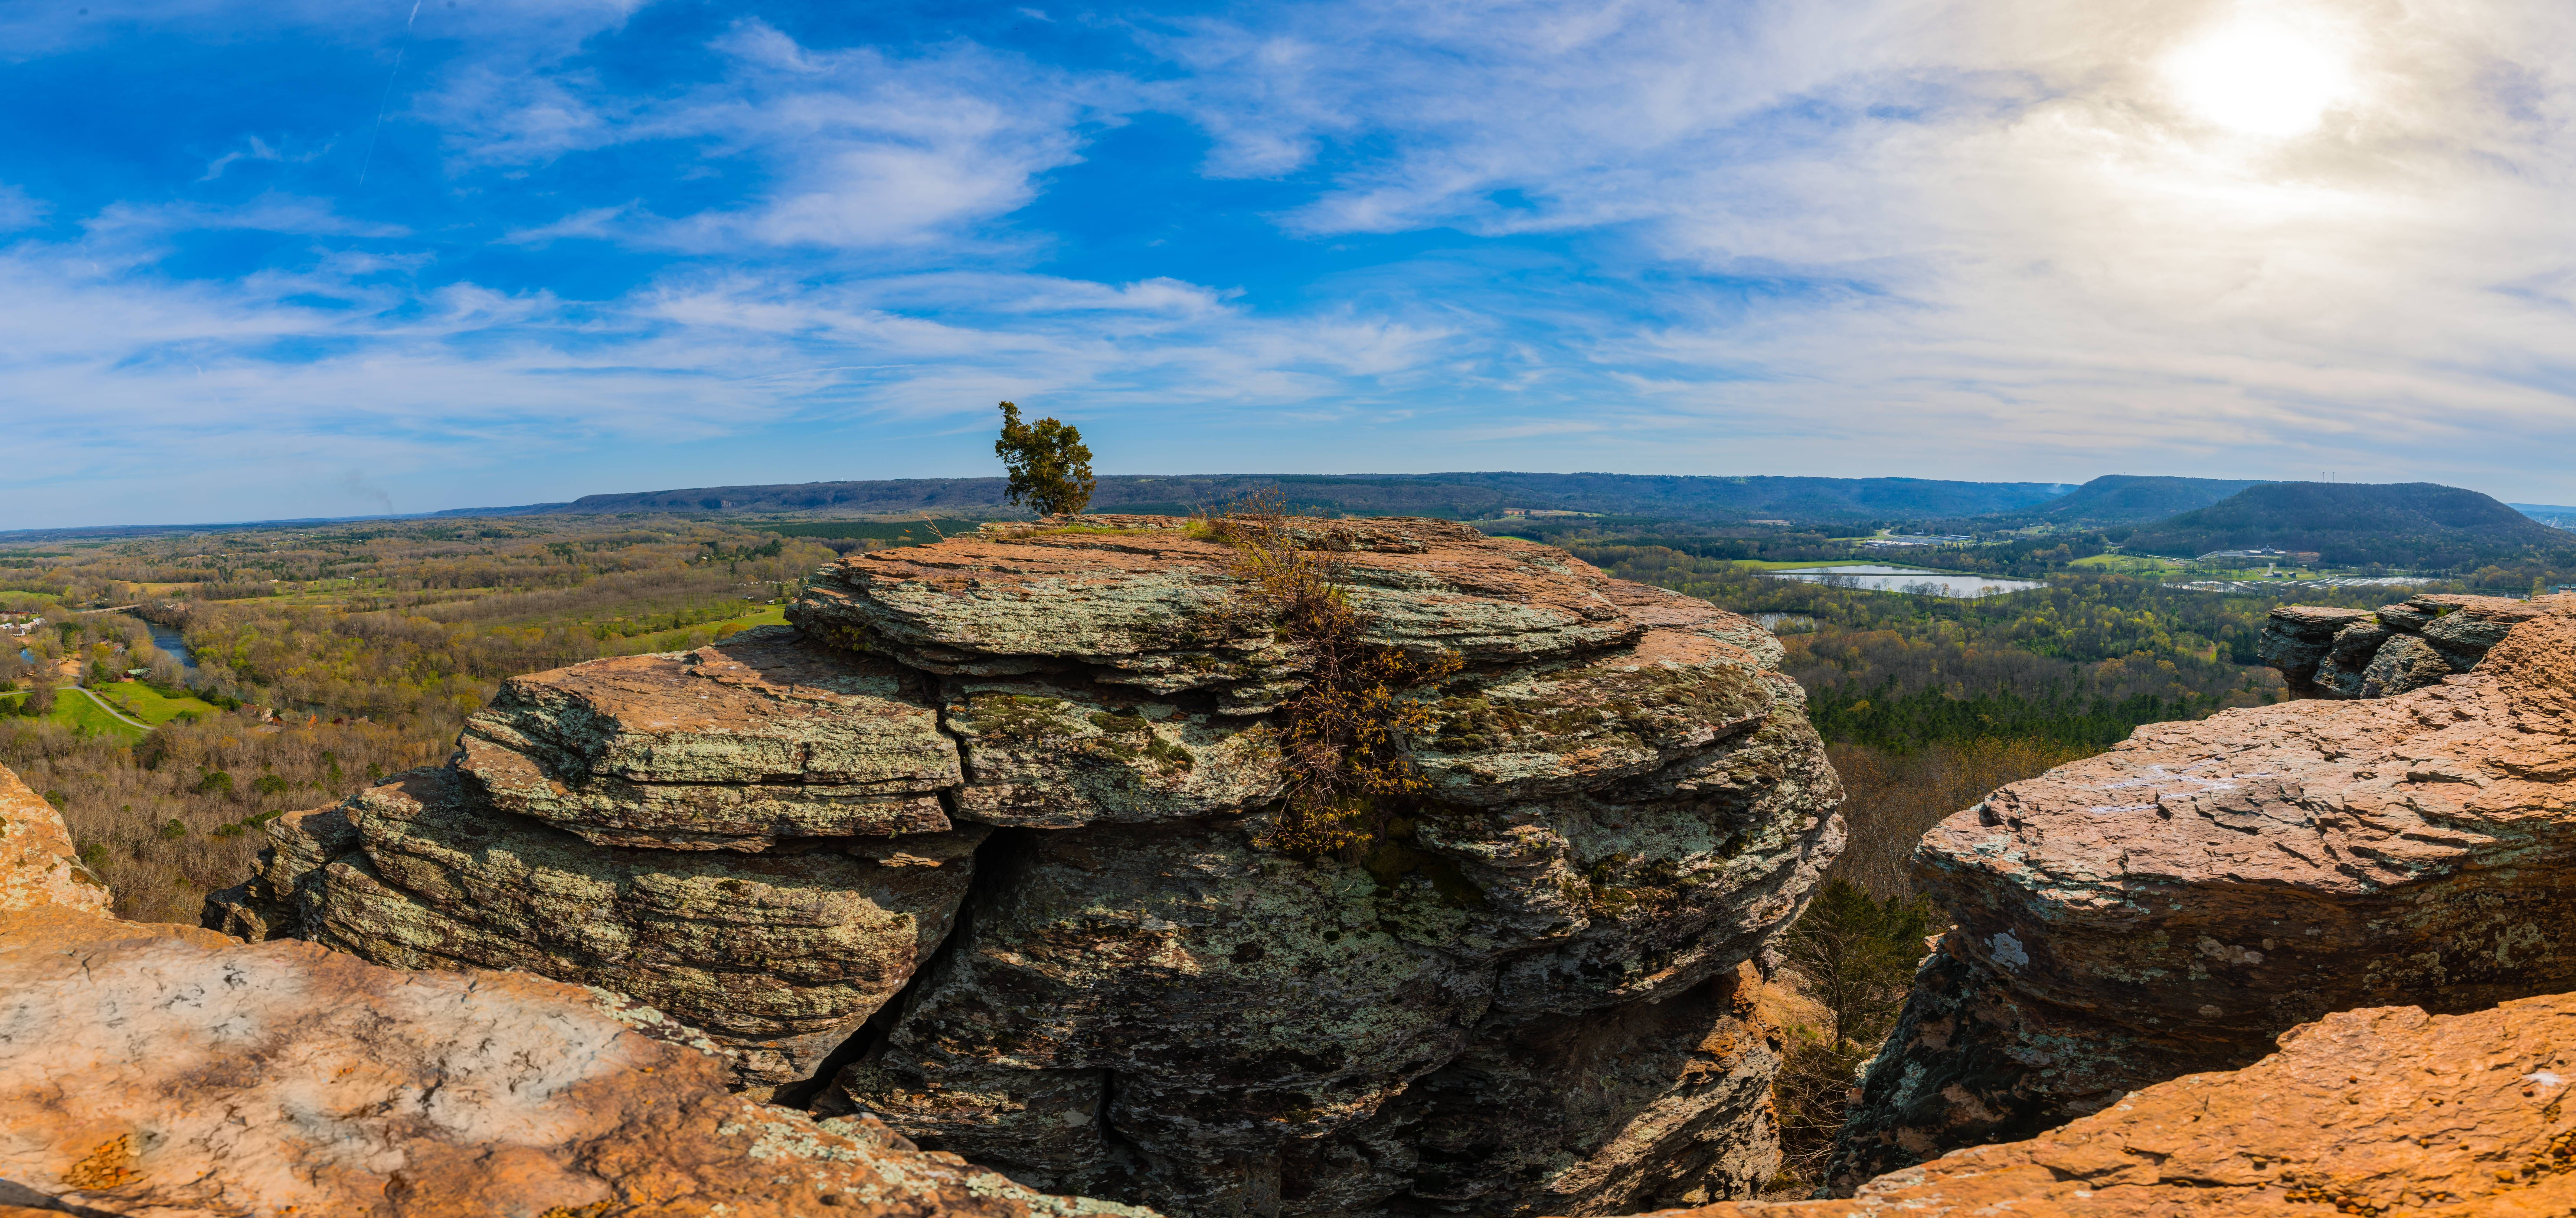 Hiking In Heber Springs Ar Sugarloaf Mountain Panorama Oc 9516x4499 Heber Springs Pretty Places Day Trips